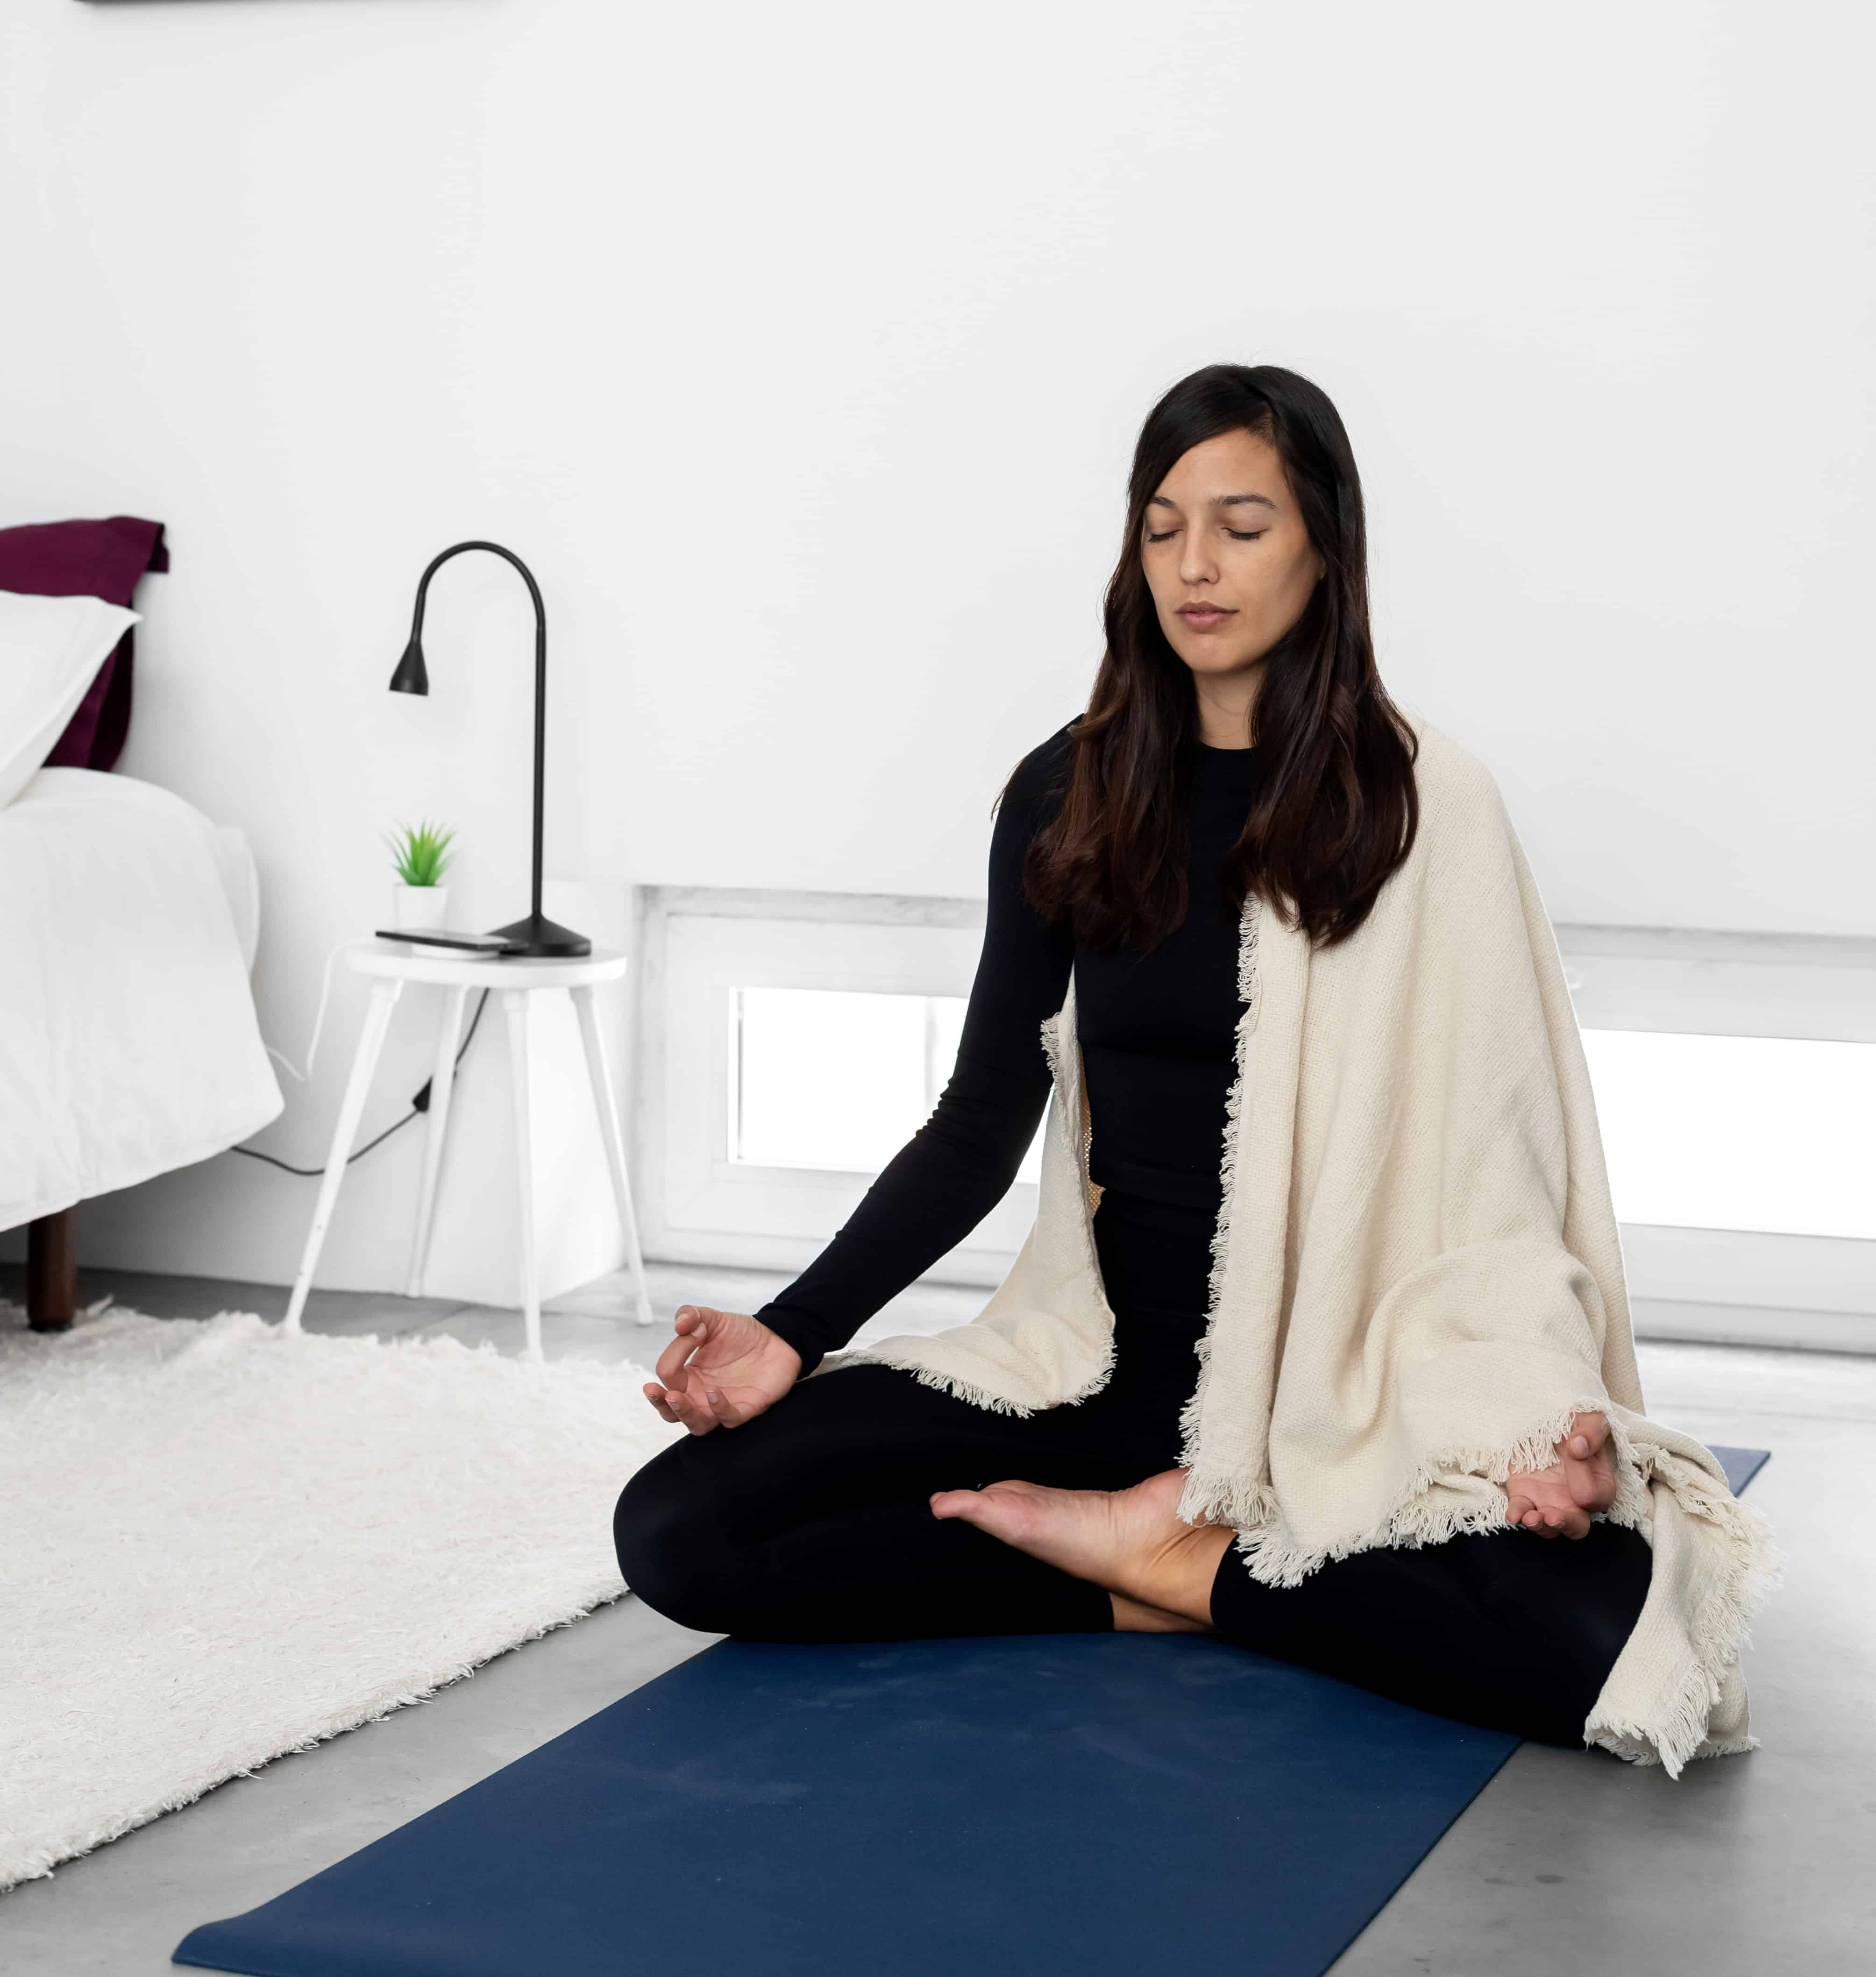 Tranquil young woman in sportswear and shawl practicing meditation in lotus pose in minimalist style room at home